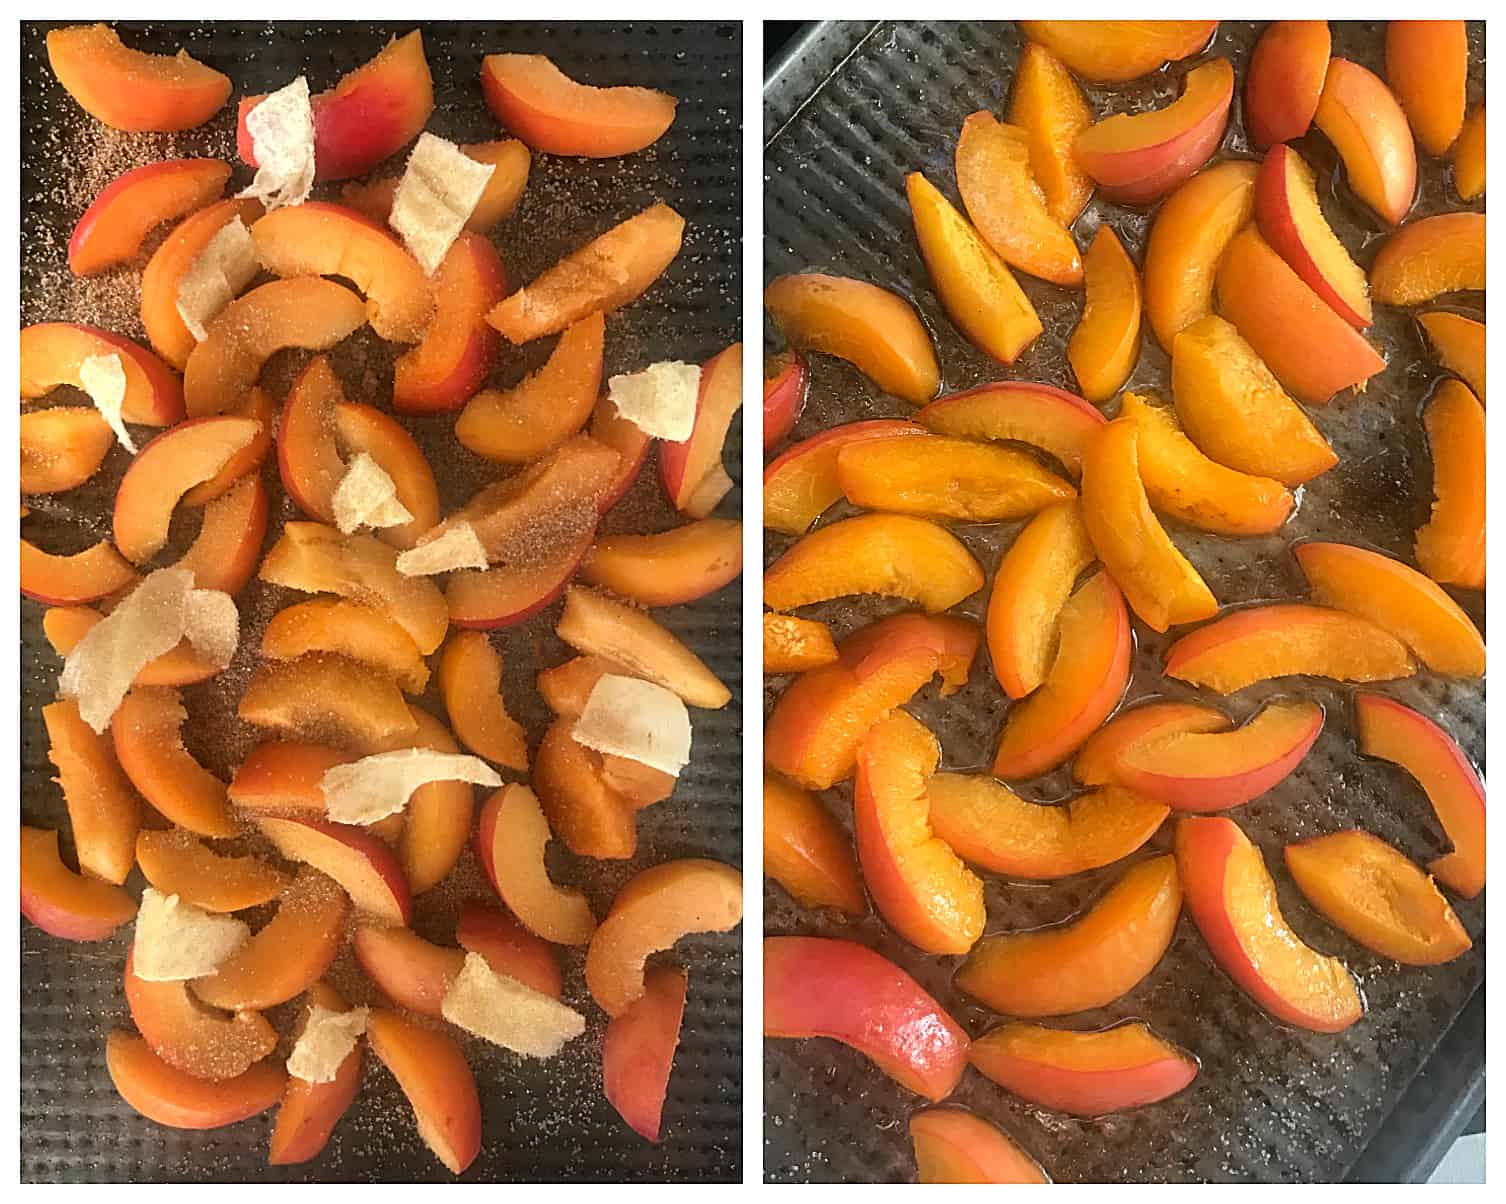 Raw and baked apricots in oven pans, image collage